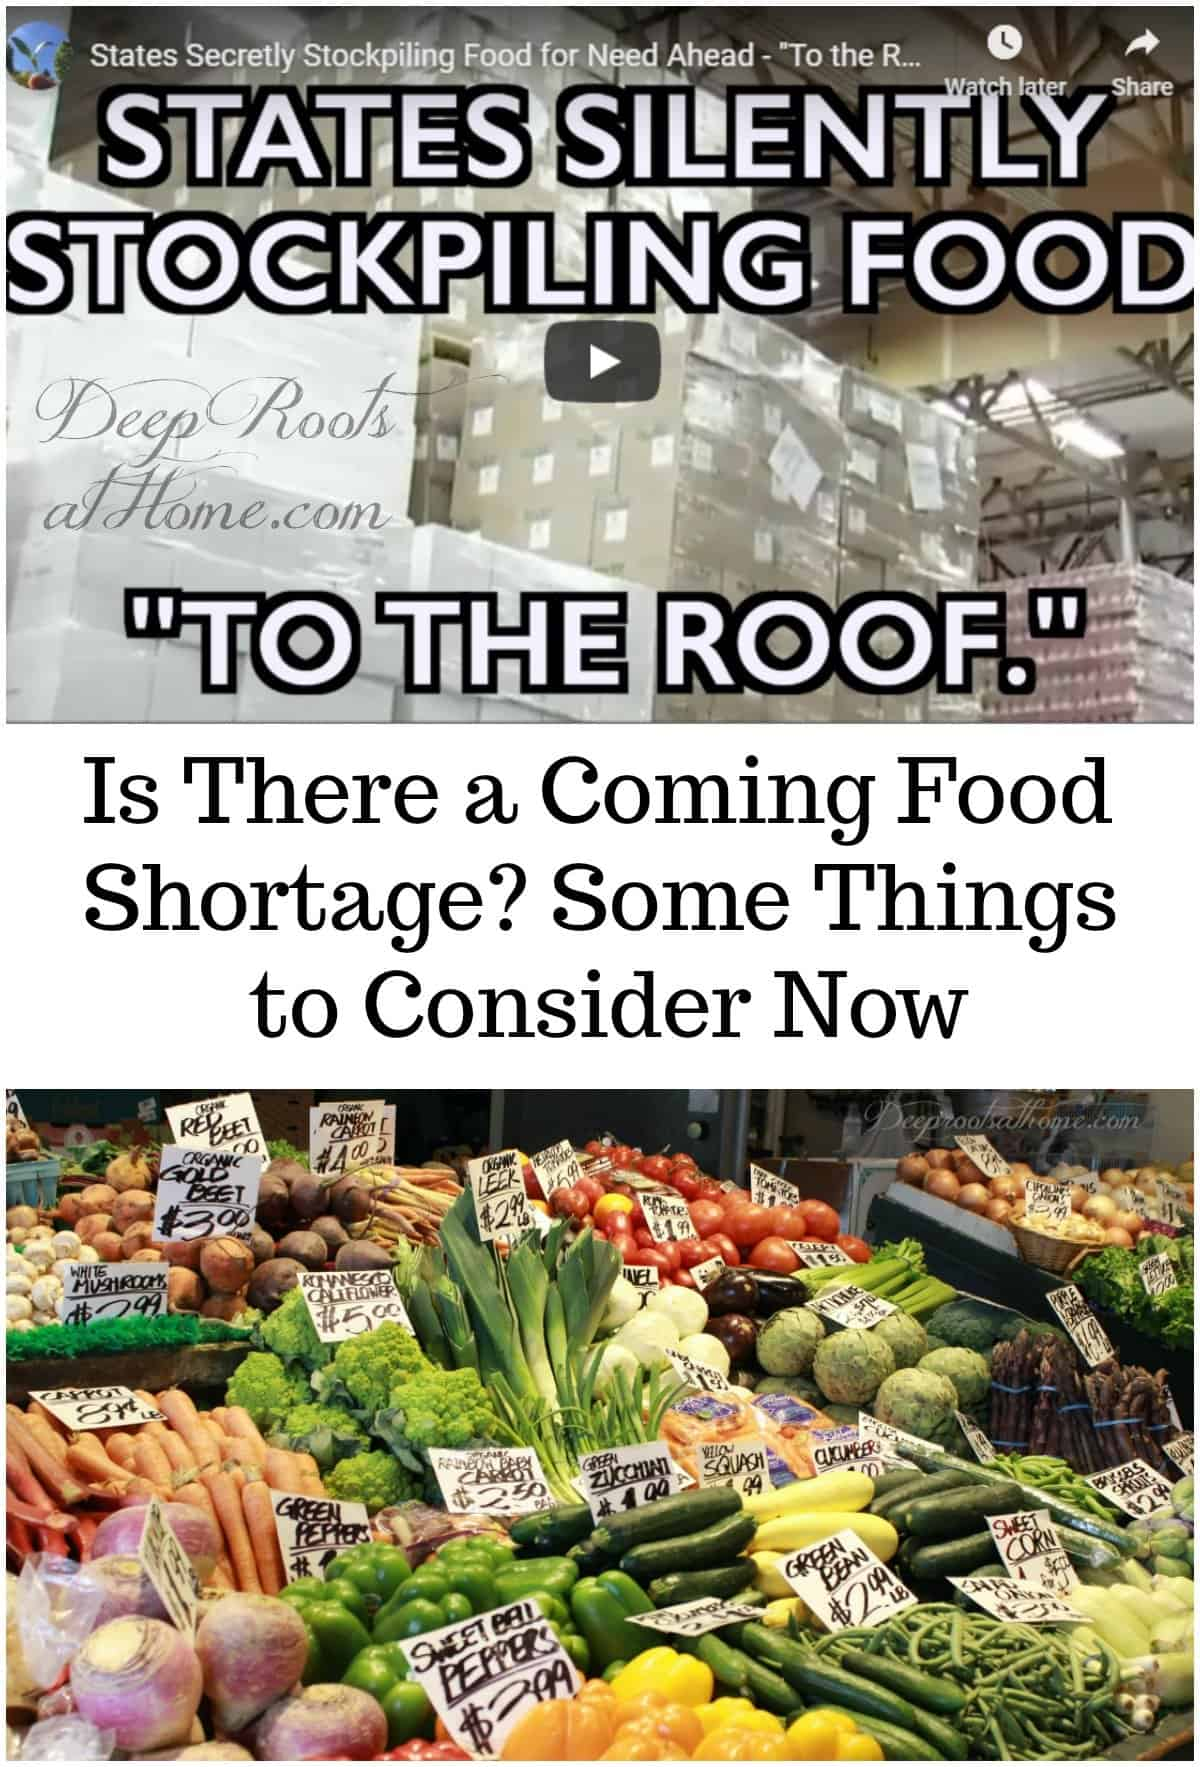 Is There a Coming Food Shortage? Some Things to Consider Now, produce